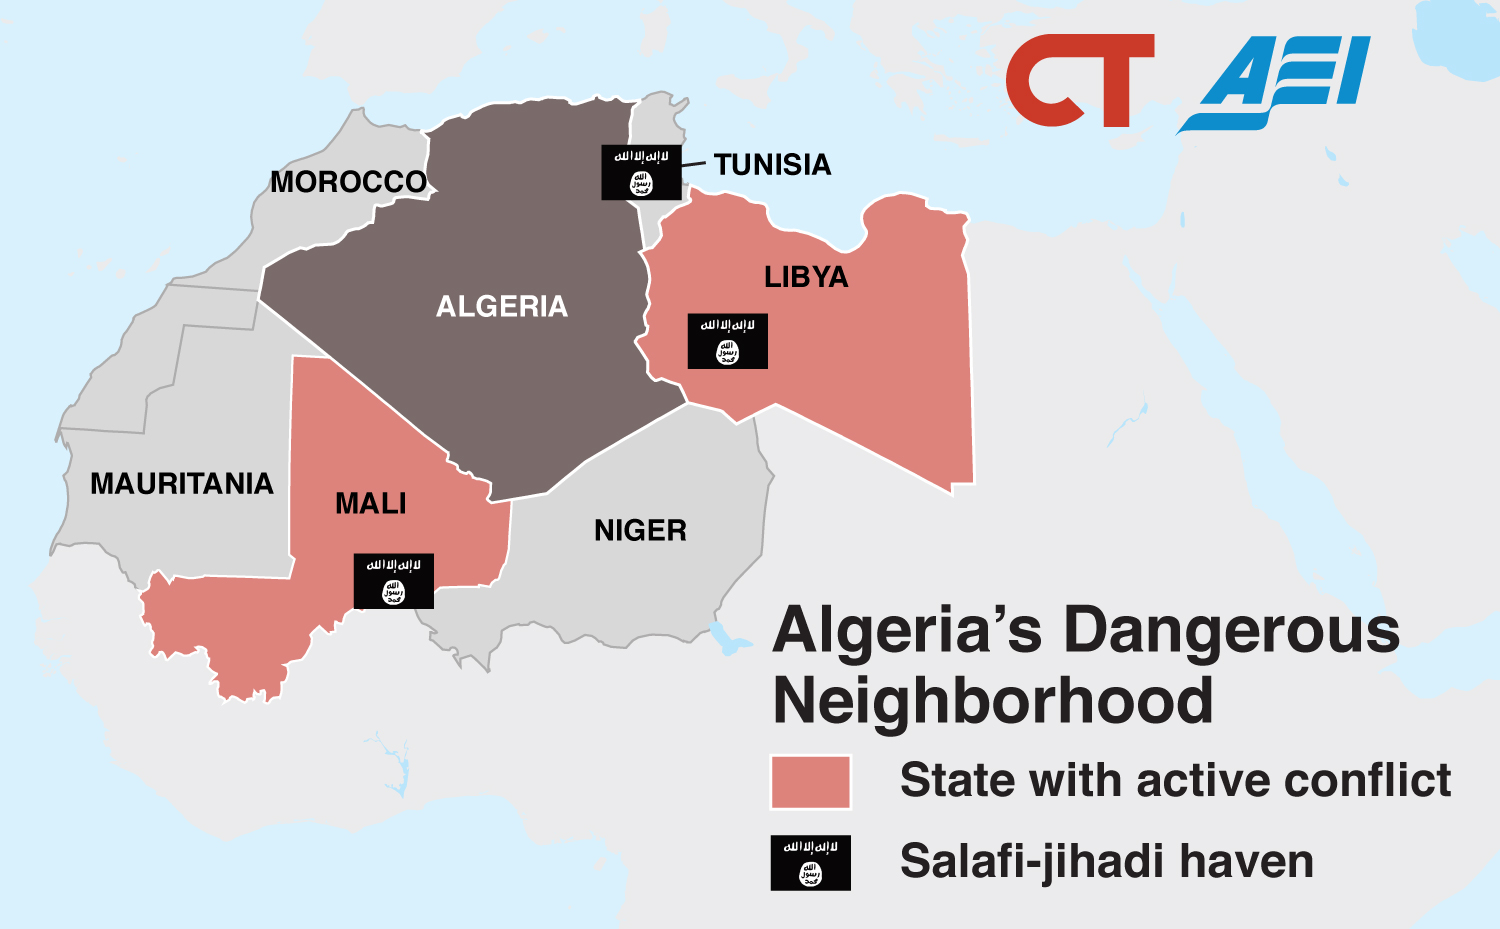 In Algeria, Hope For The Best But Prepare For The Worst